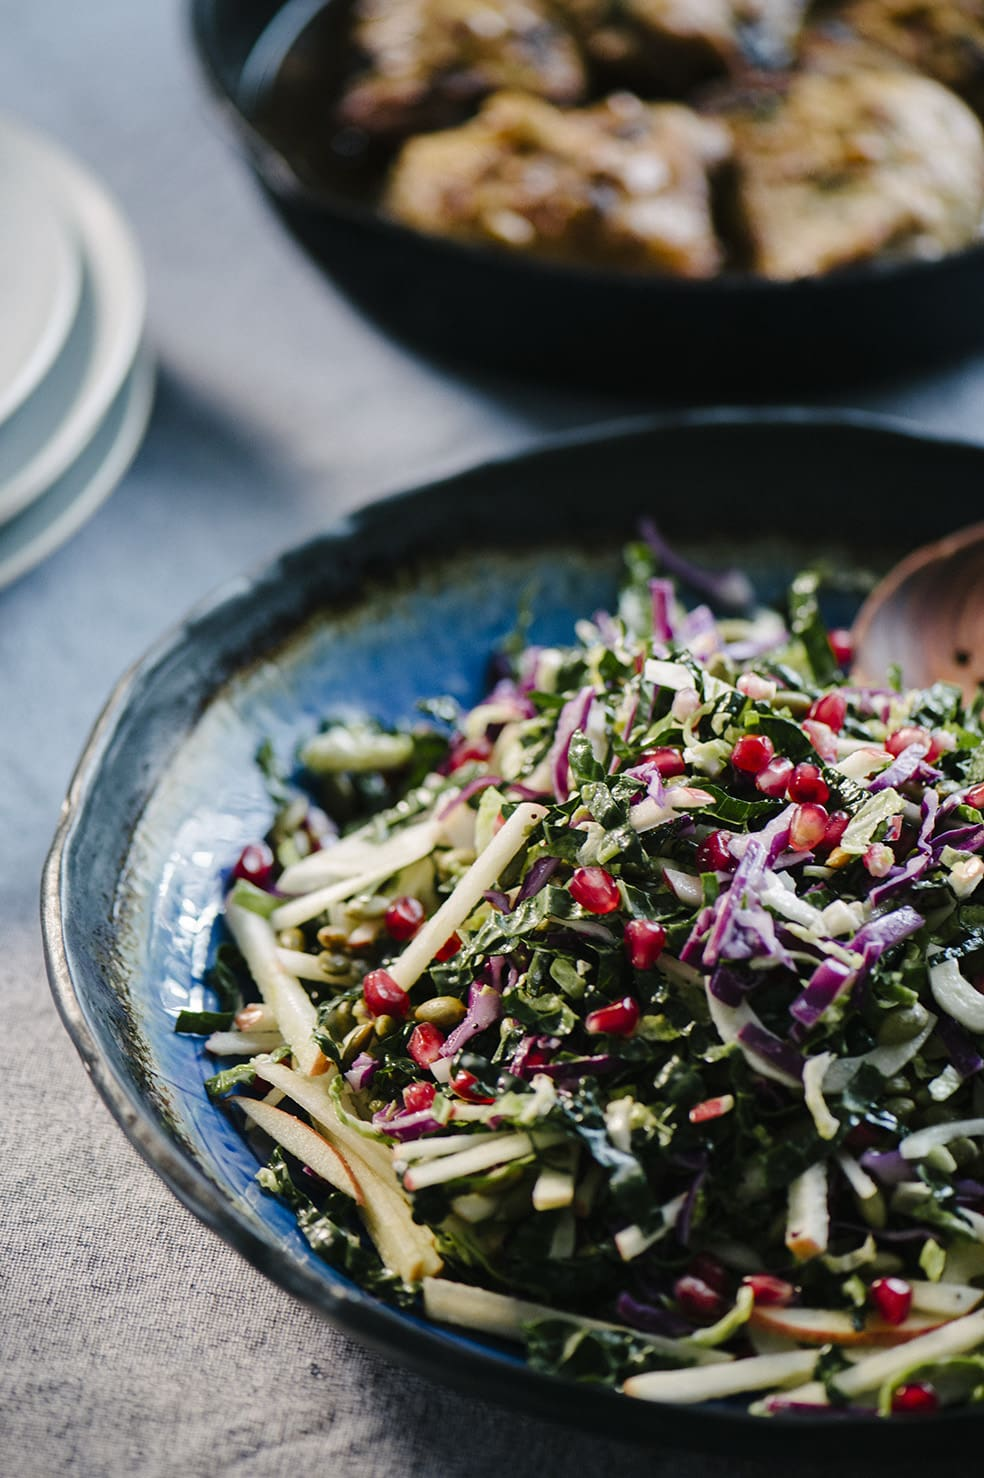 Kale pomegranate salad with apples, fennel, and pepitas in a blue serving dish next to a dish of cast iron skillet roasted chicken.